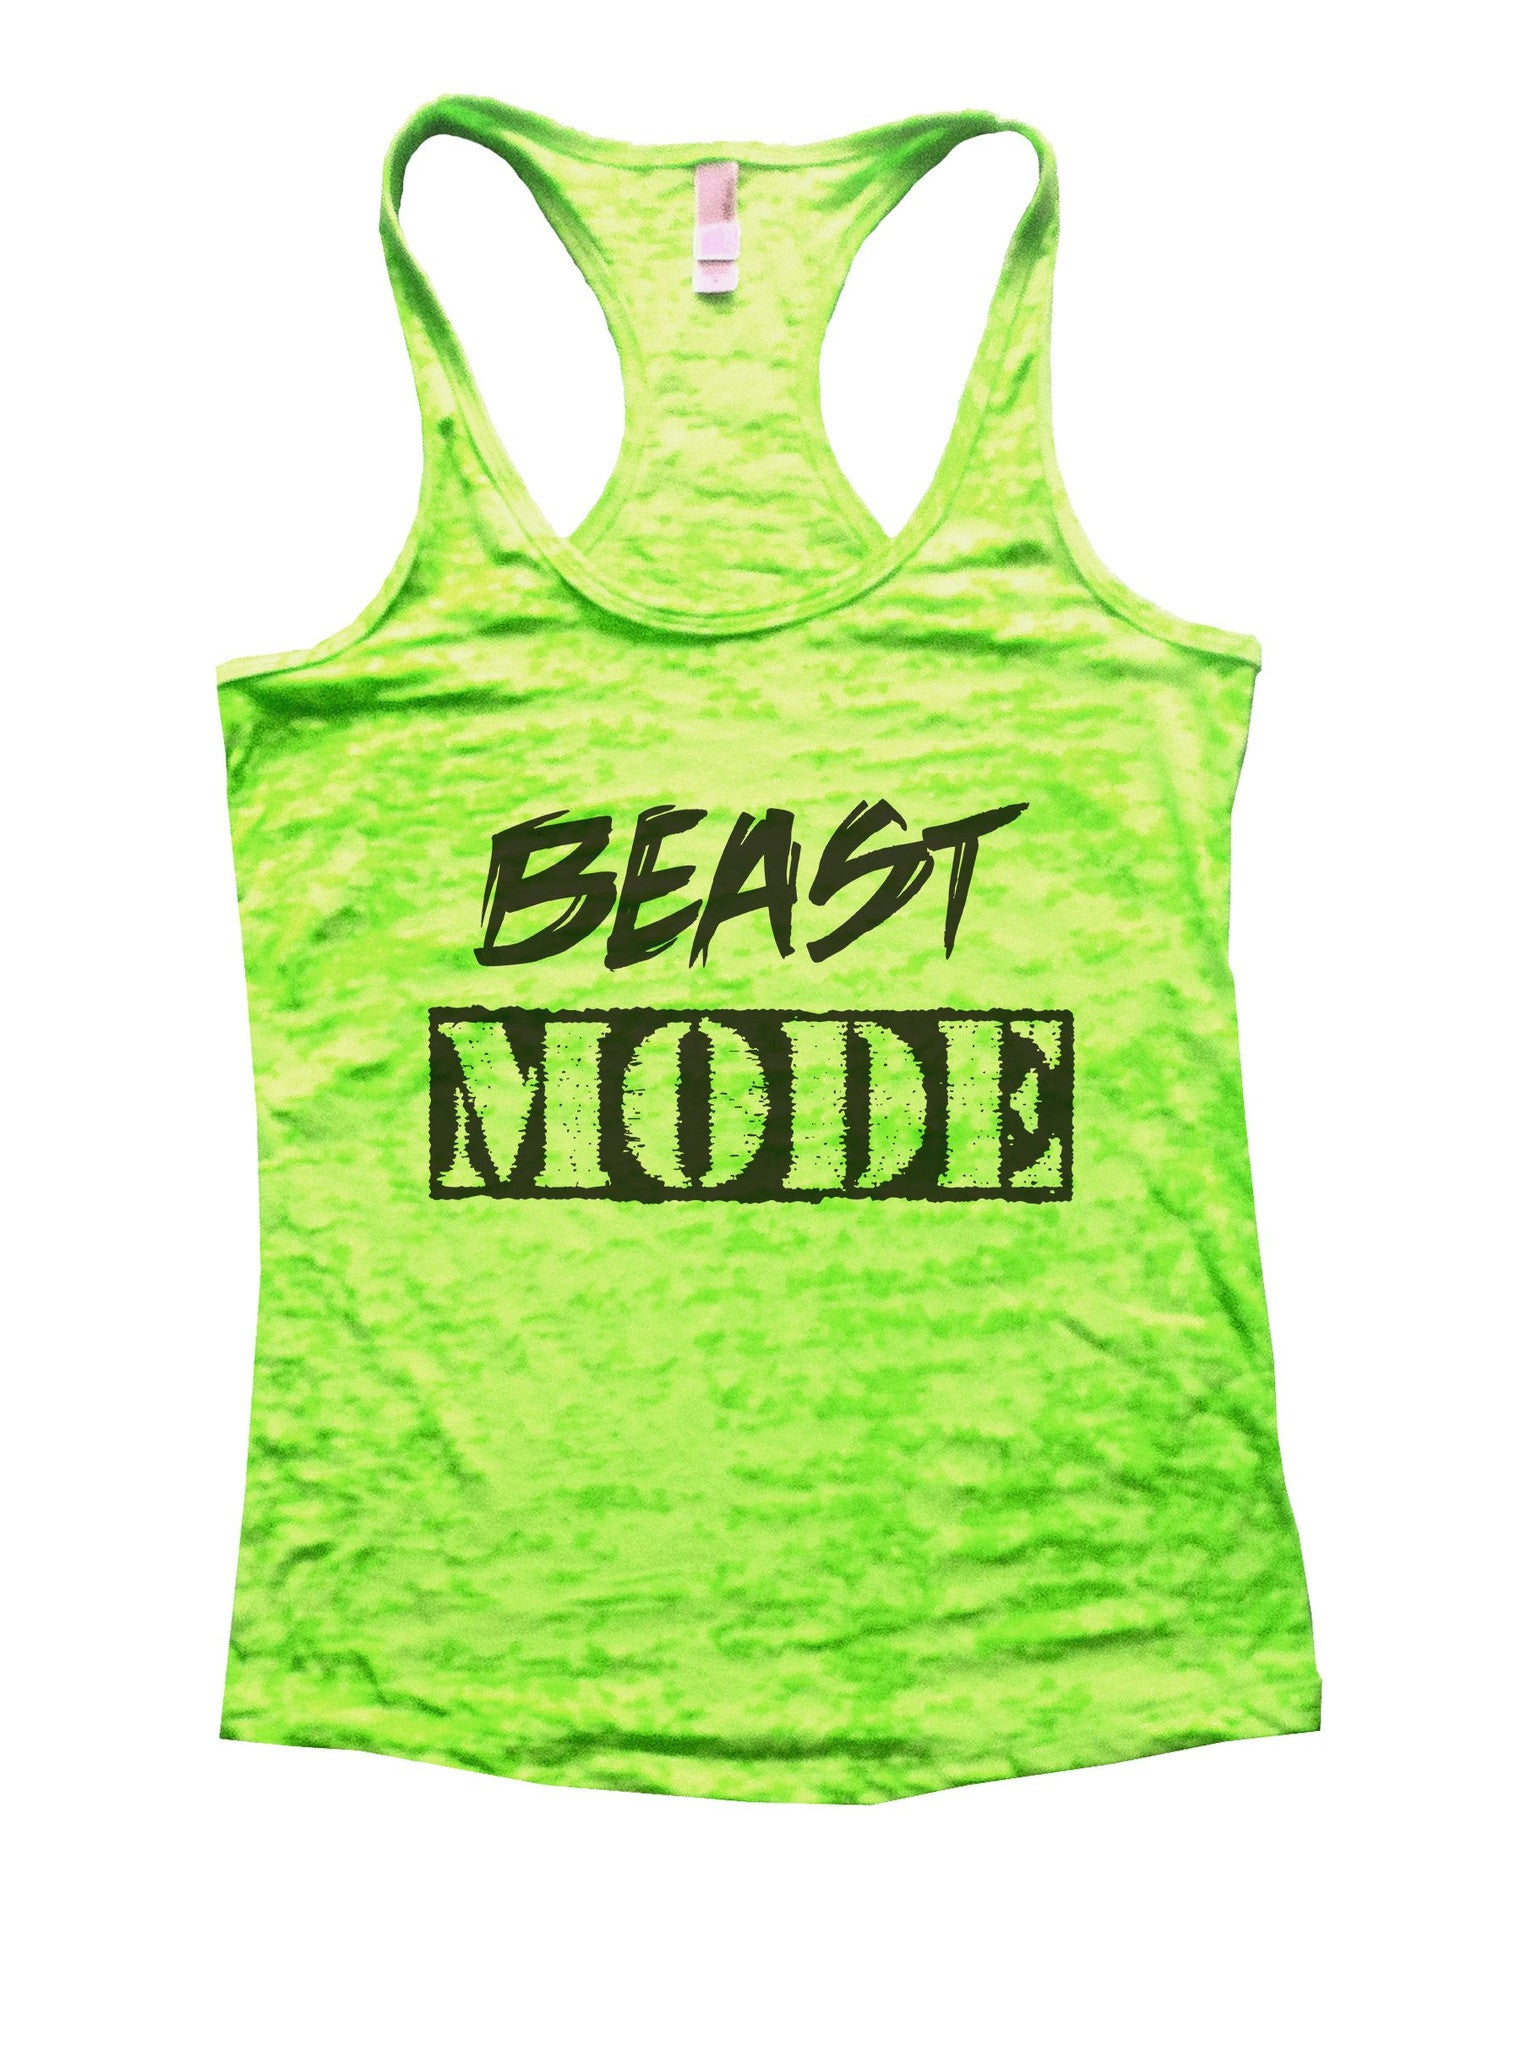 Beast Mode Burnout Tank Top By BurnoutTankTops.com - 823 - Funny Shirts Tank Tops Burnouts and Triblends  - 2